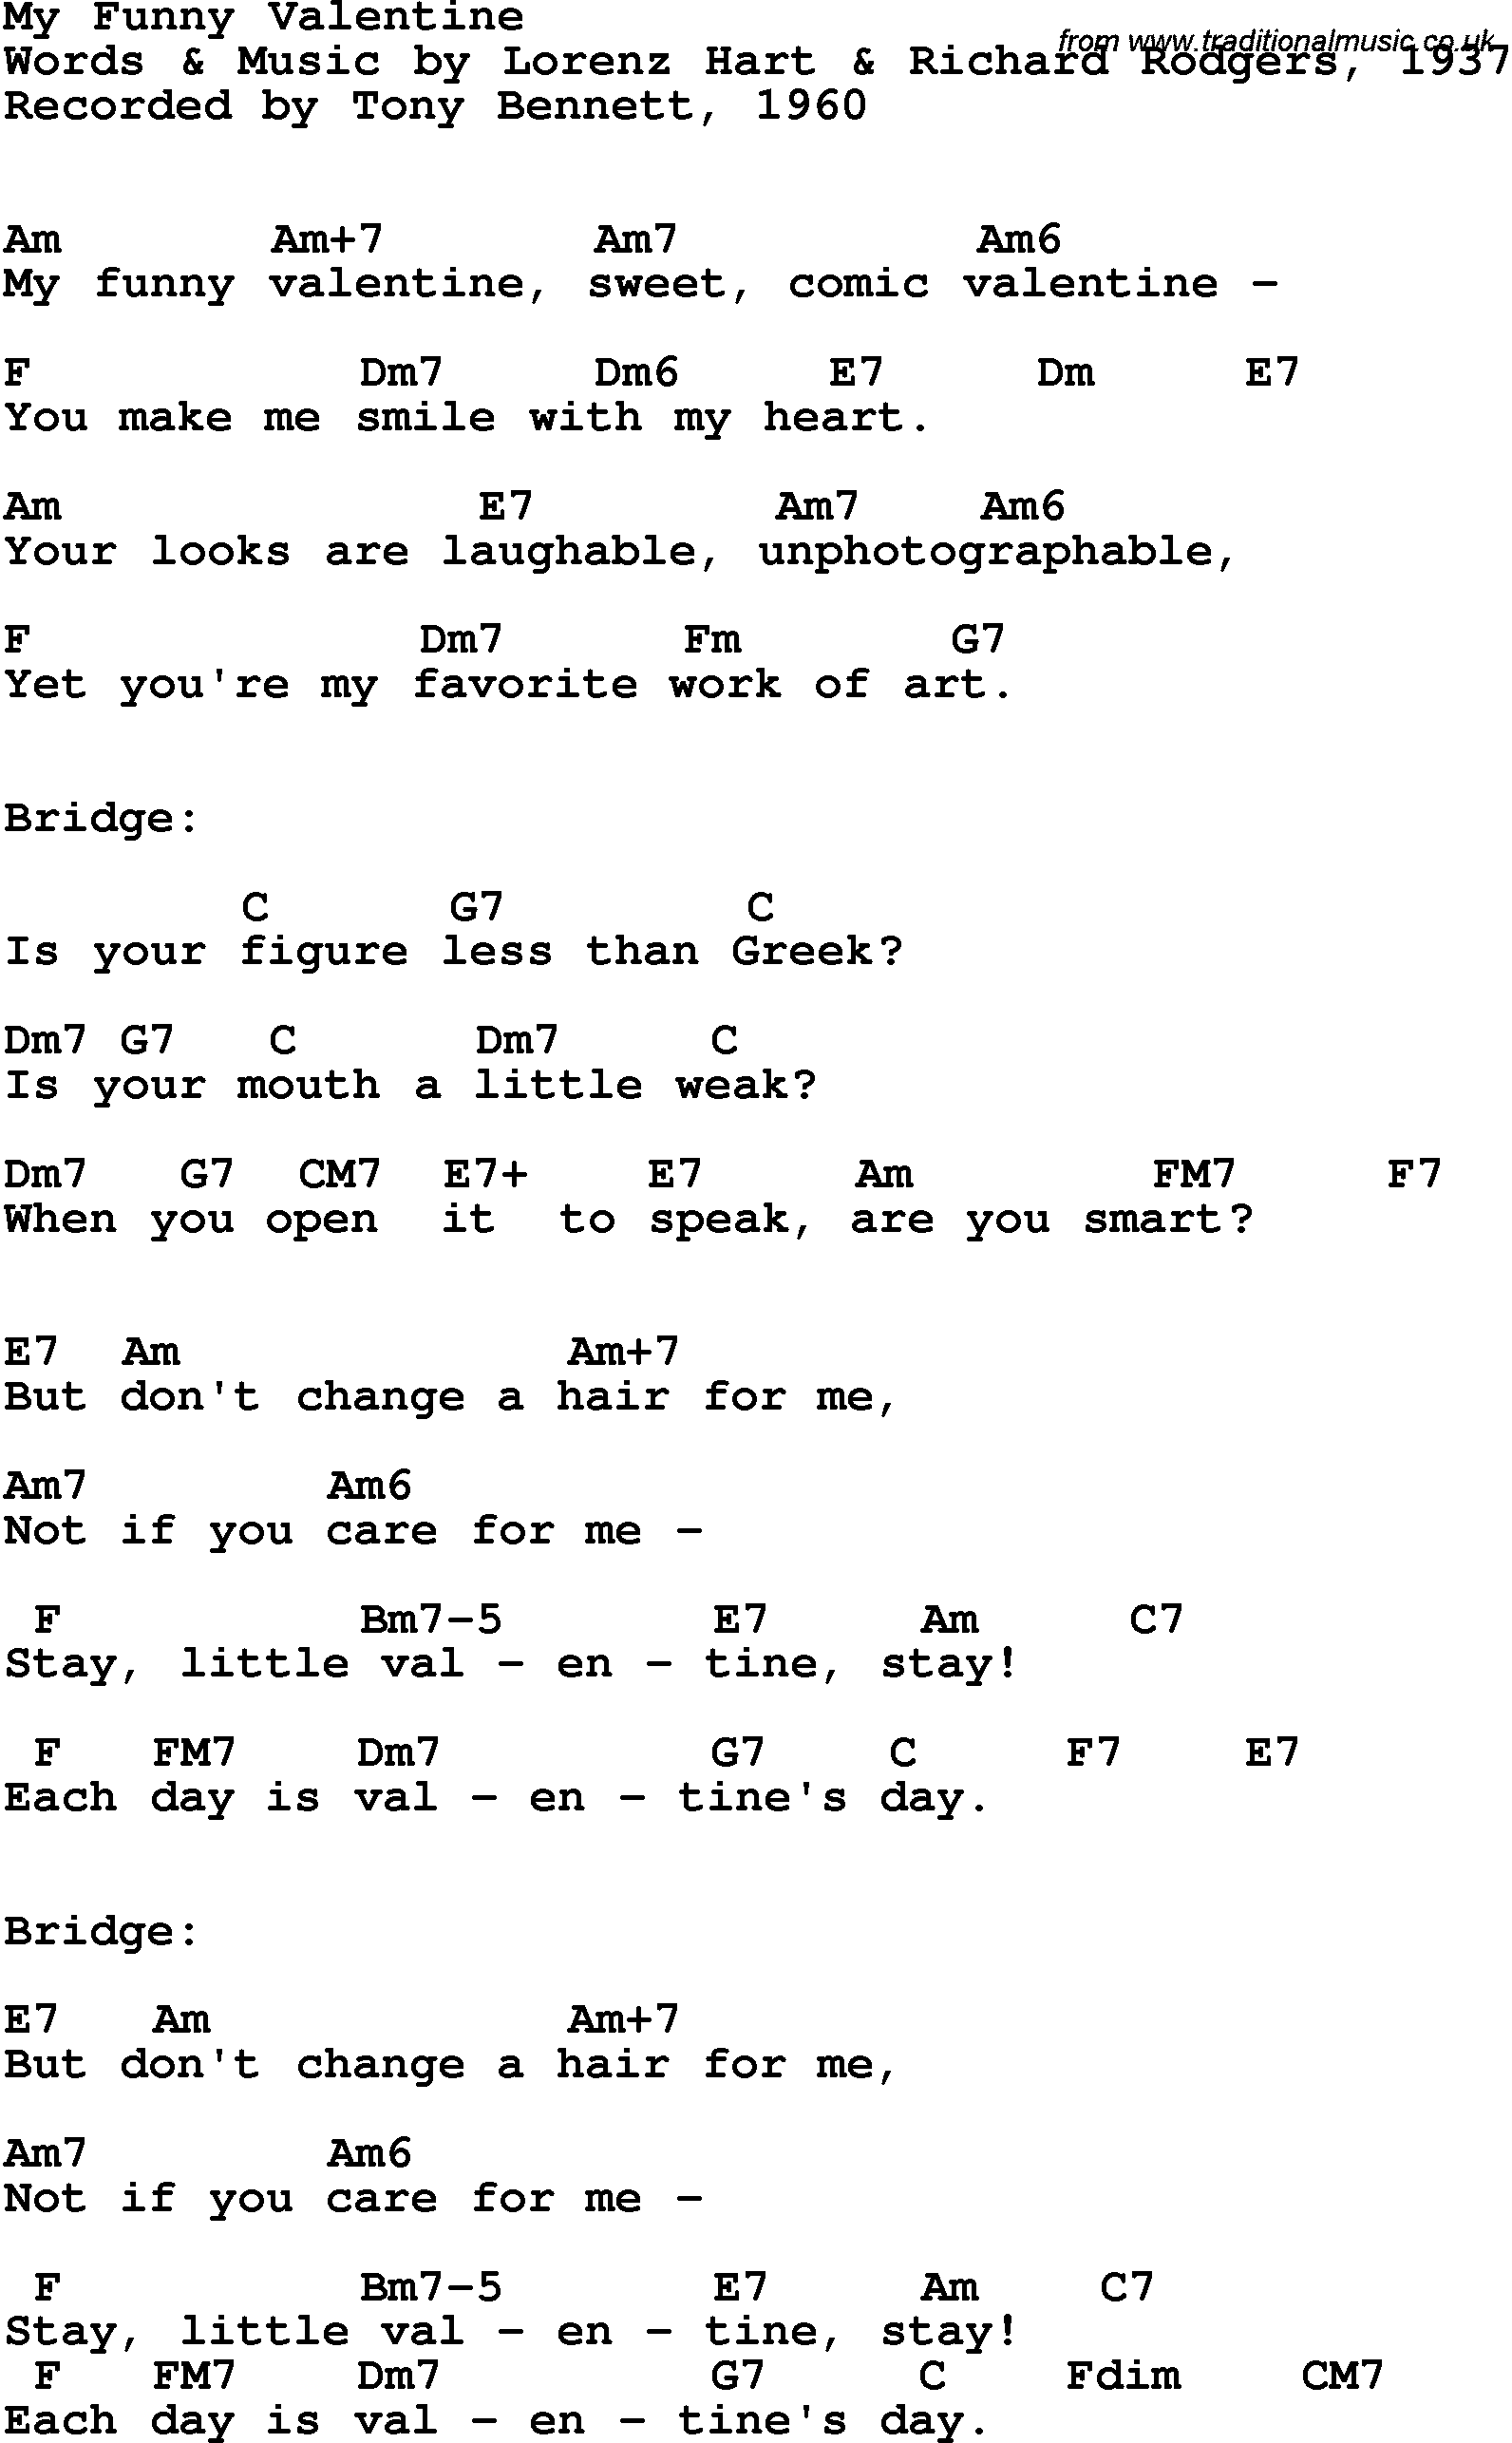 Song Lyrics With Guitar Chords For My Funny Valentine   Frank Sinatra, 1954